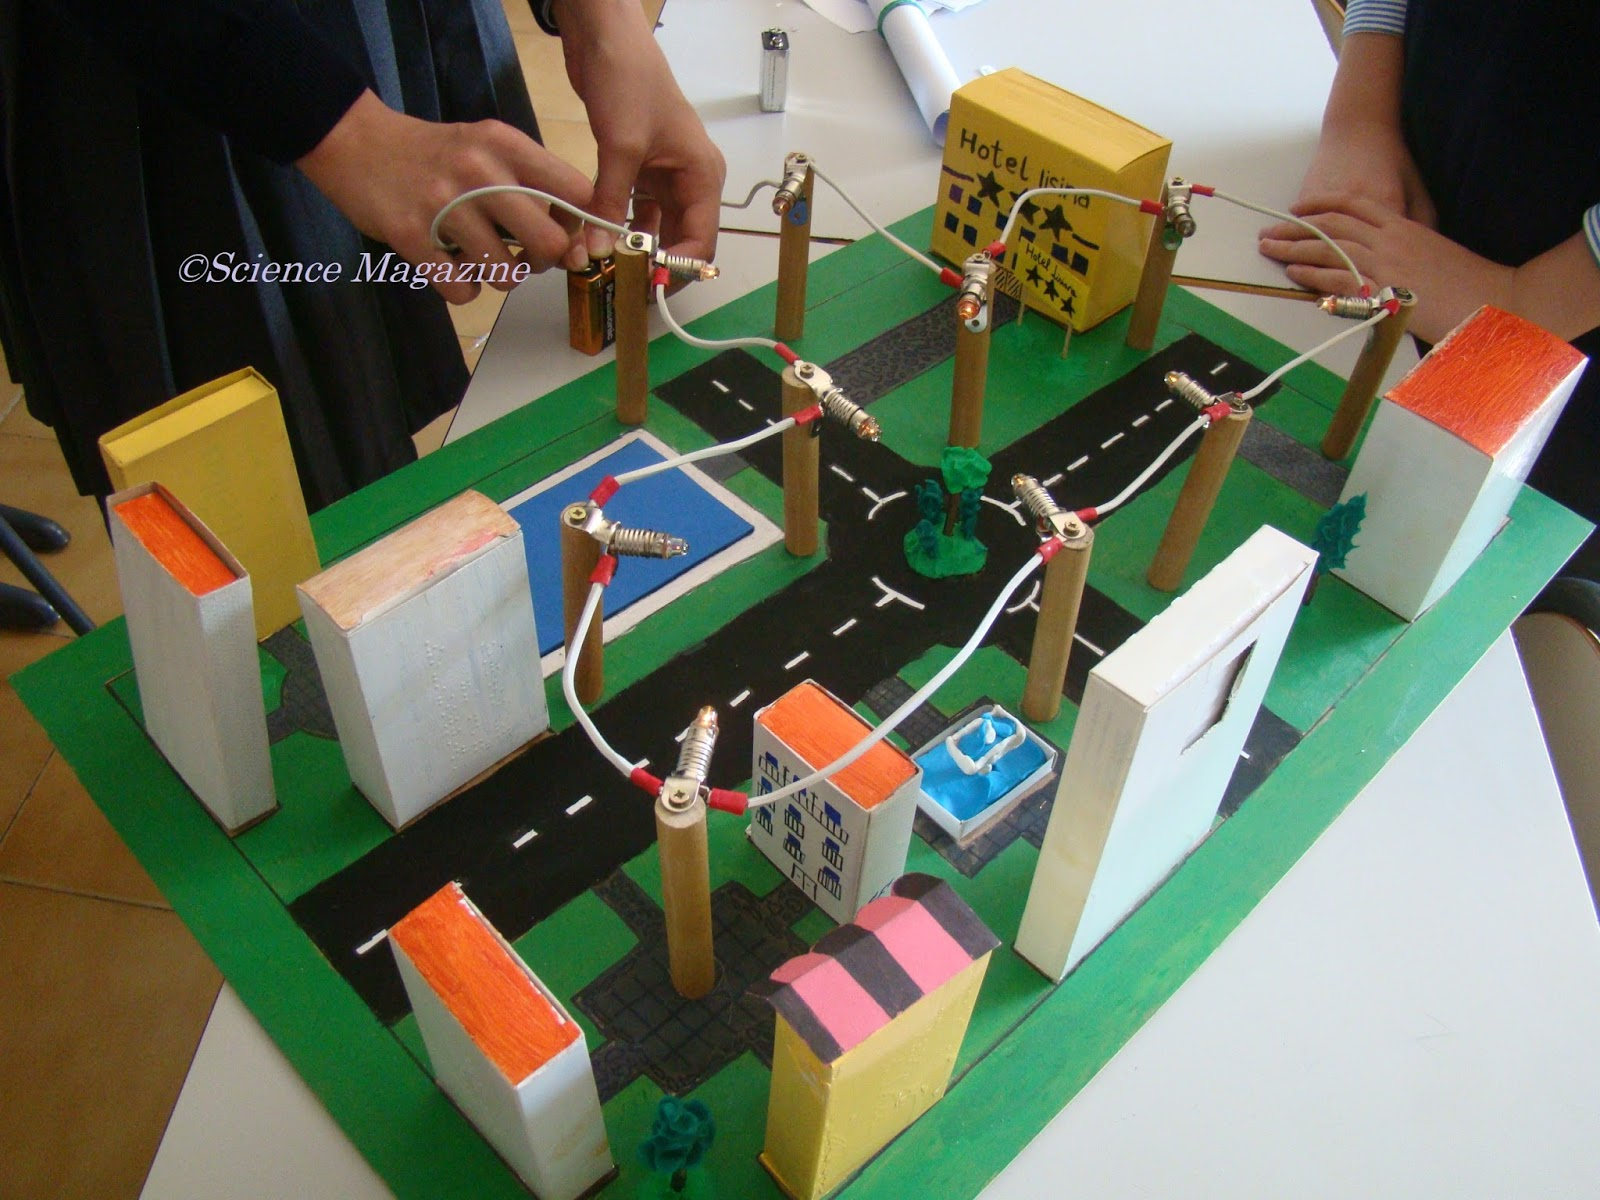 Science Magazine Electric Circuits By Paula Pinilla And Ernesto Garcia Circuit Light Bulb In The Model Of City They Fitted A Series This Case There Is Only One With Many Elements Line All Bulbs Are